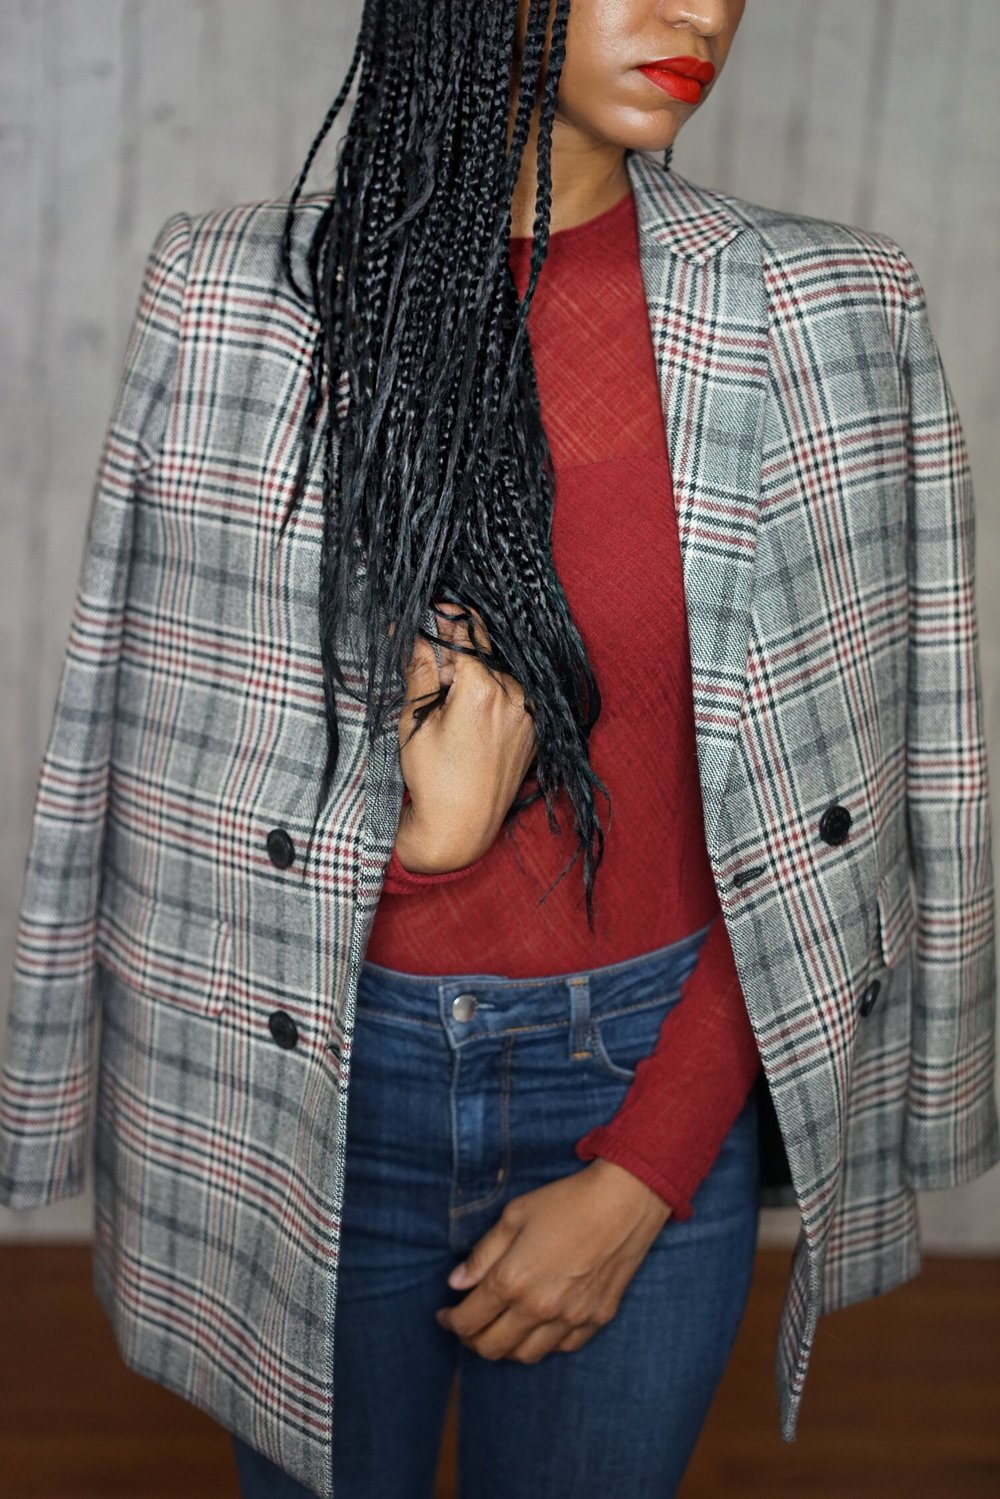 christine_the_style_affaire_sandro_paris_plaid_jacket_blazers_maje_burgundy_top_material_girl_boots_aldo_l_agence_jeans_blue_outfit_hm_earrings_fenty_beauty_lipstick_nyc.jpg